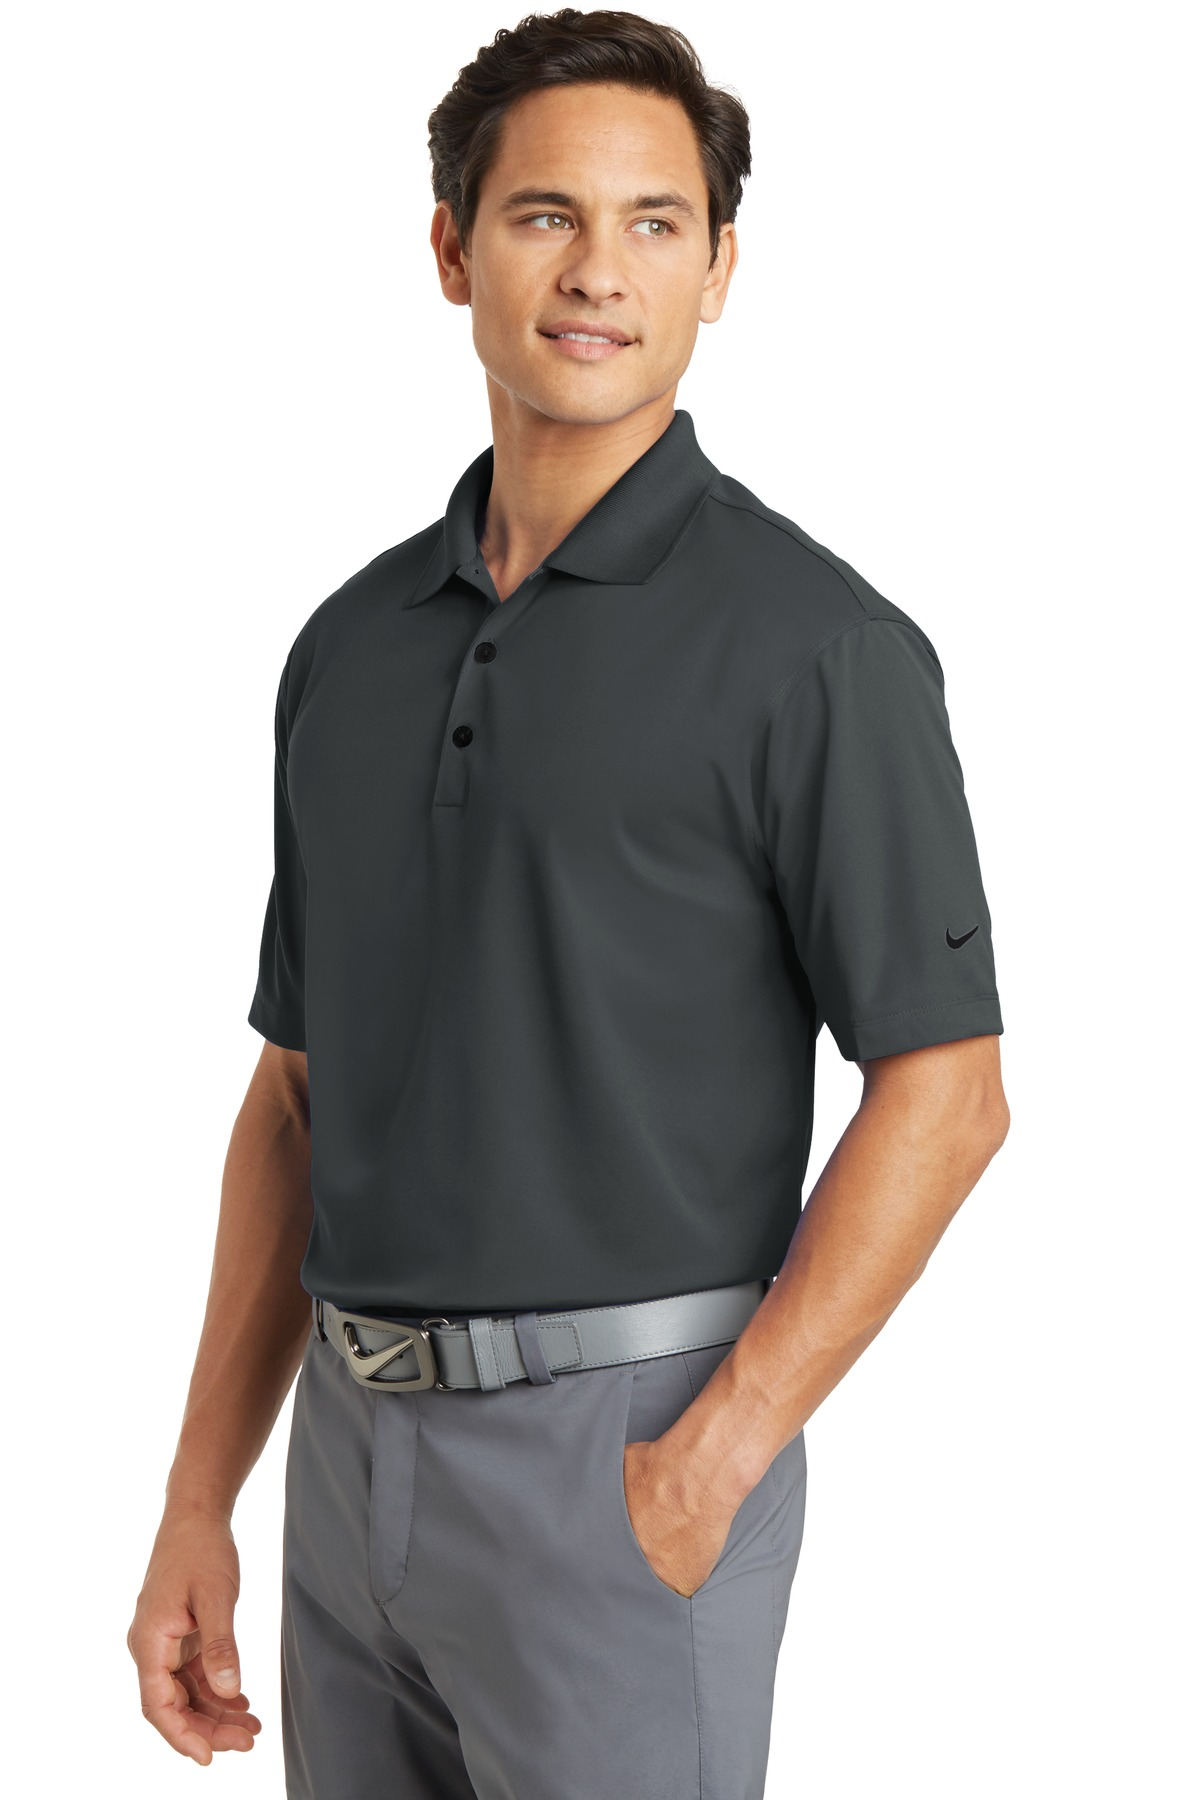 Nike Golf - Dri-FIT Micro Pique Polo - RCG3807